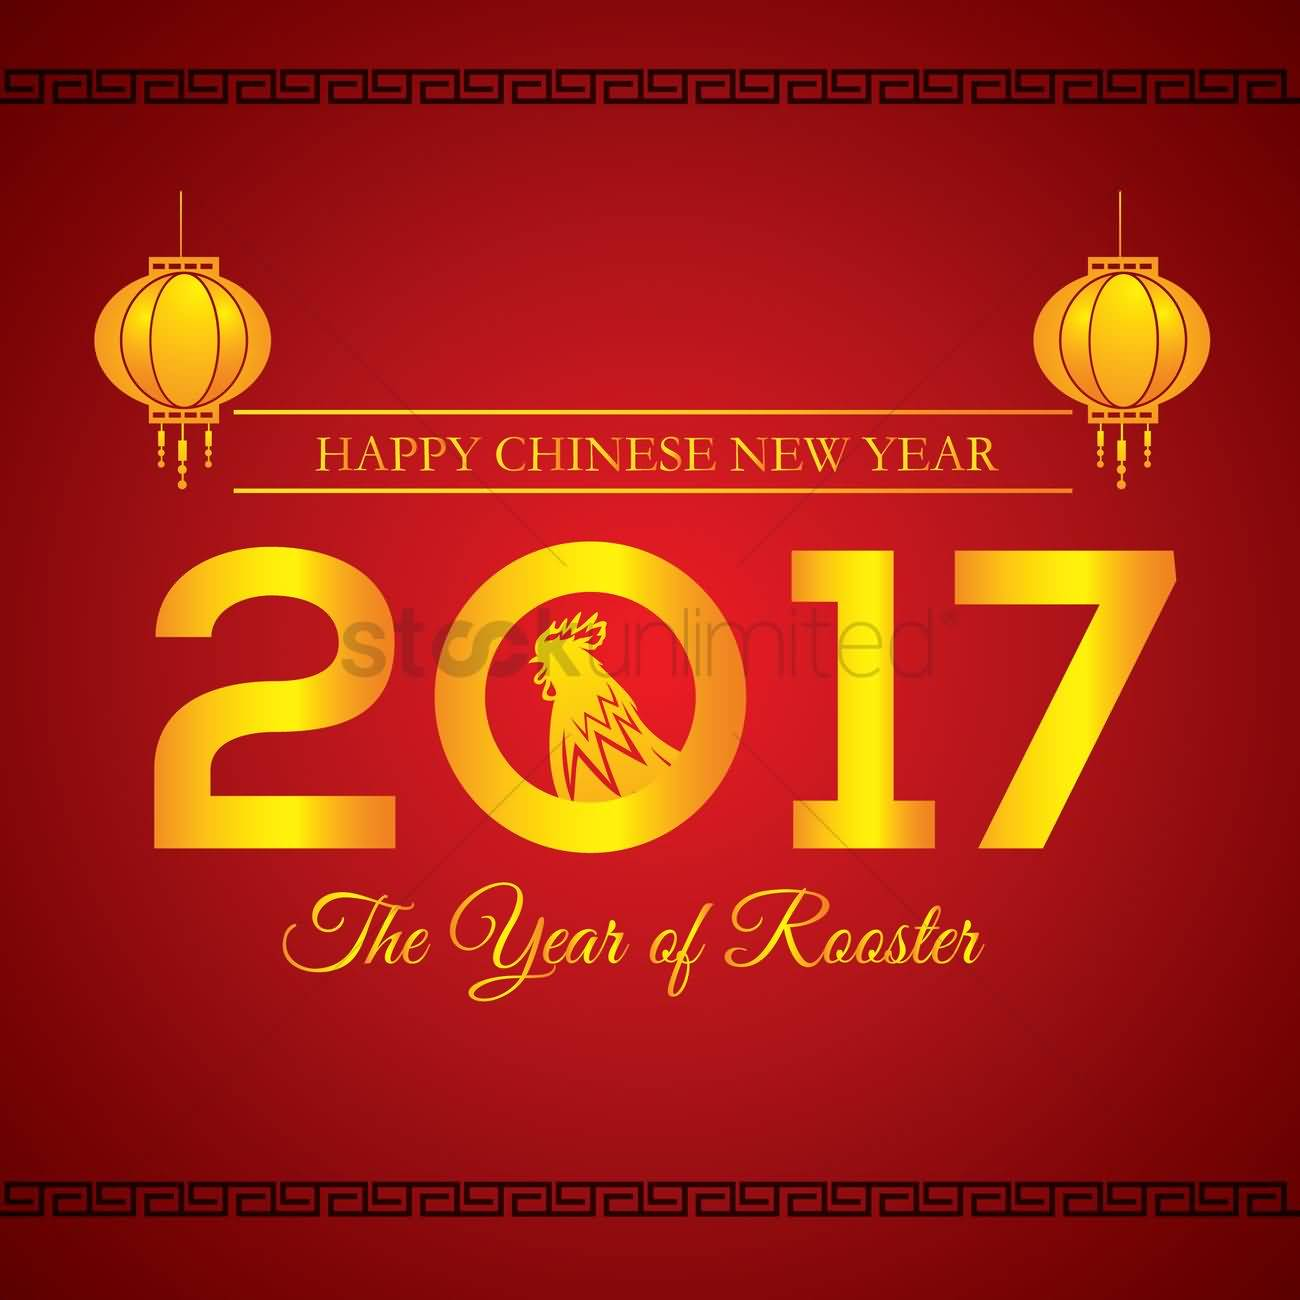 Happy Chinese New Year 2017 The Year Of Rooster Greeting Card